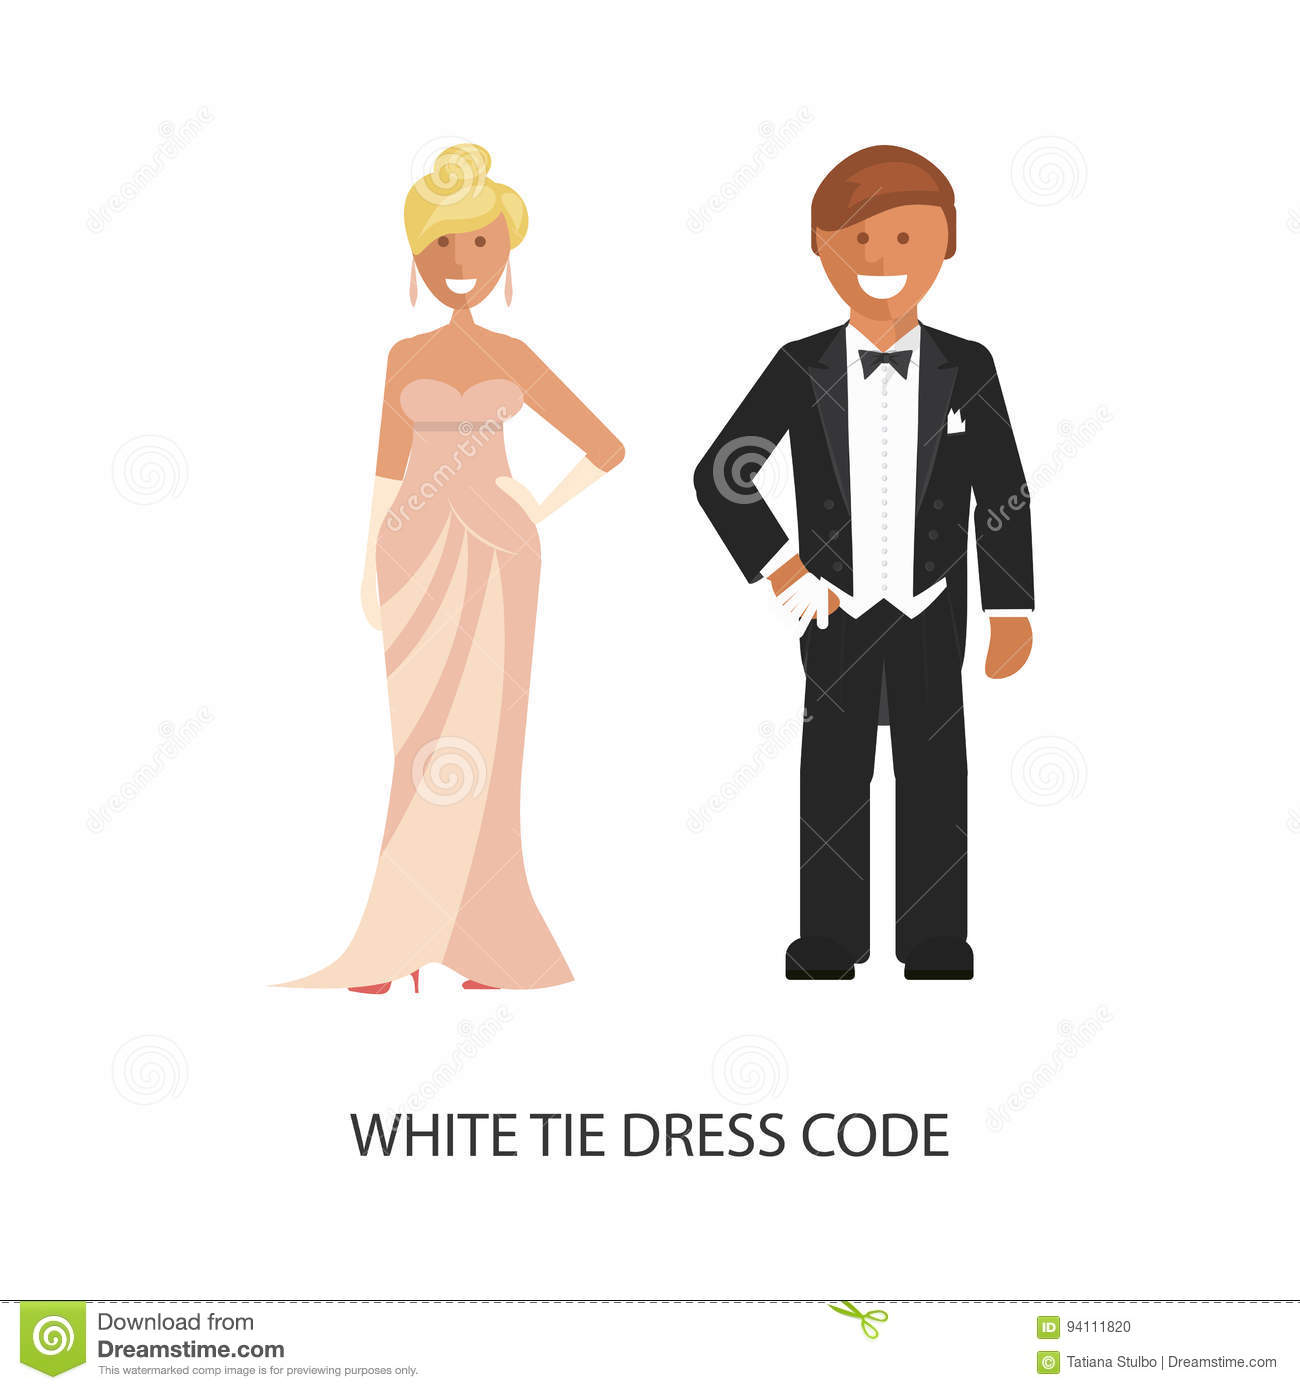 White tie dress code. stock vector. Image of business ...